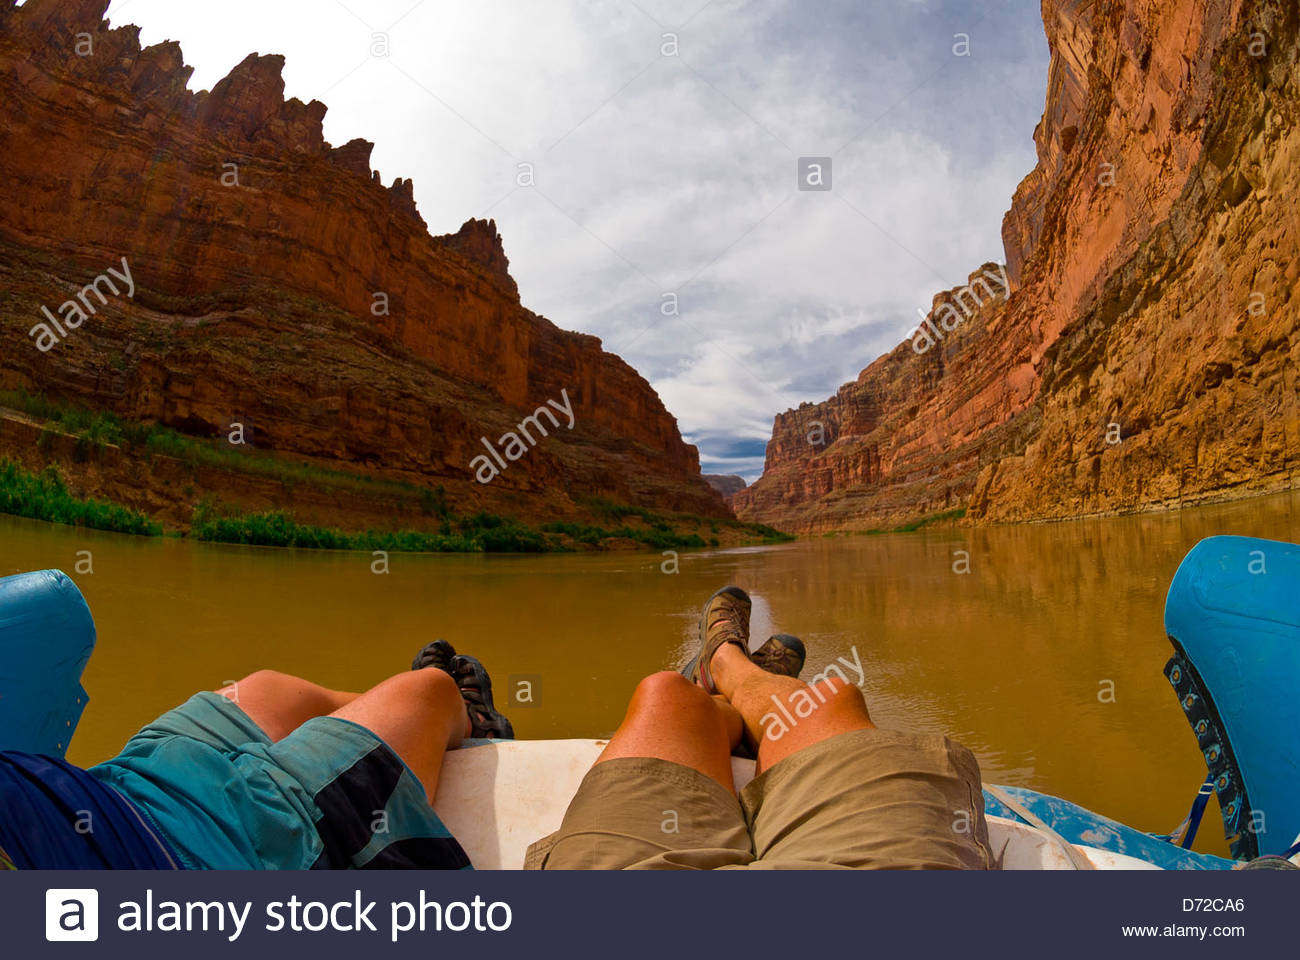 Cove, el Cañón del Río Colorado, Glen Canyon National Recreation Area, Utah, EE.UU. Imagen De Stock